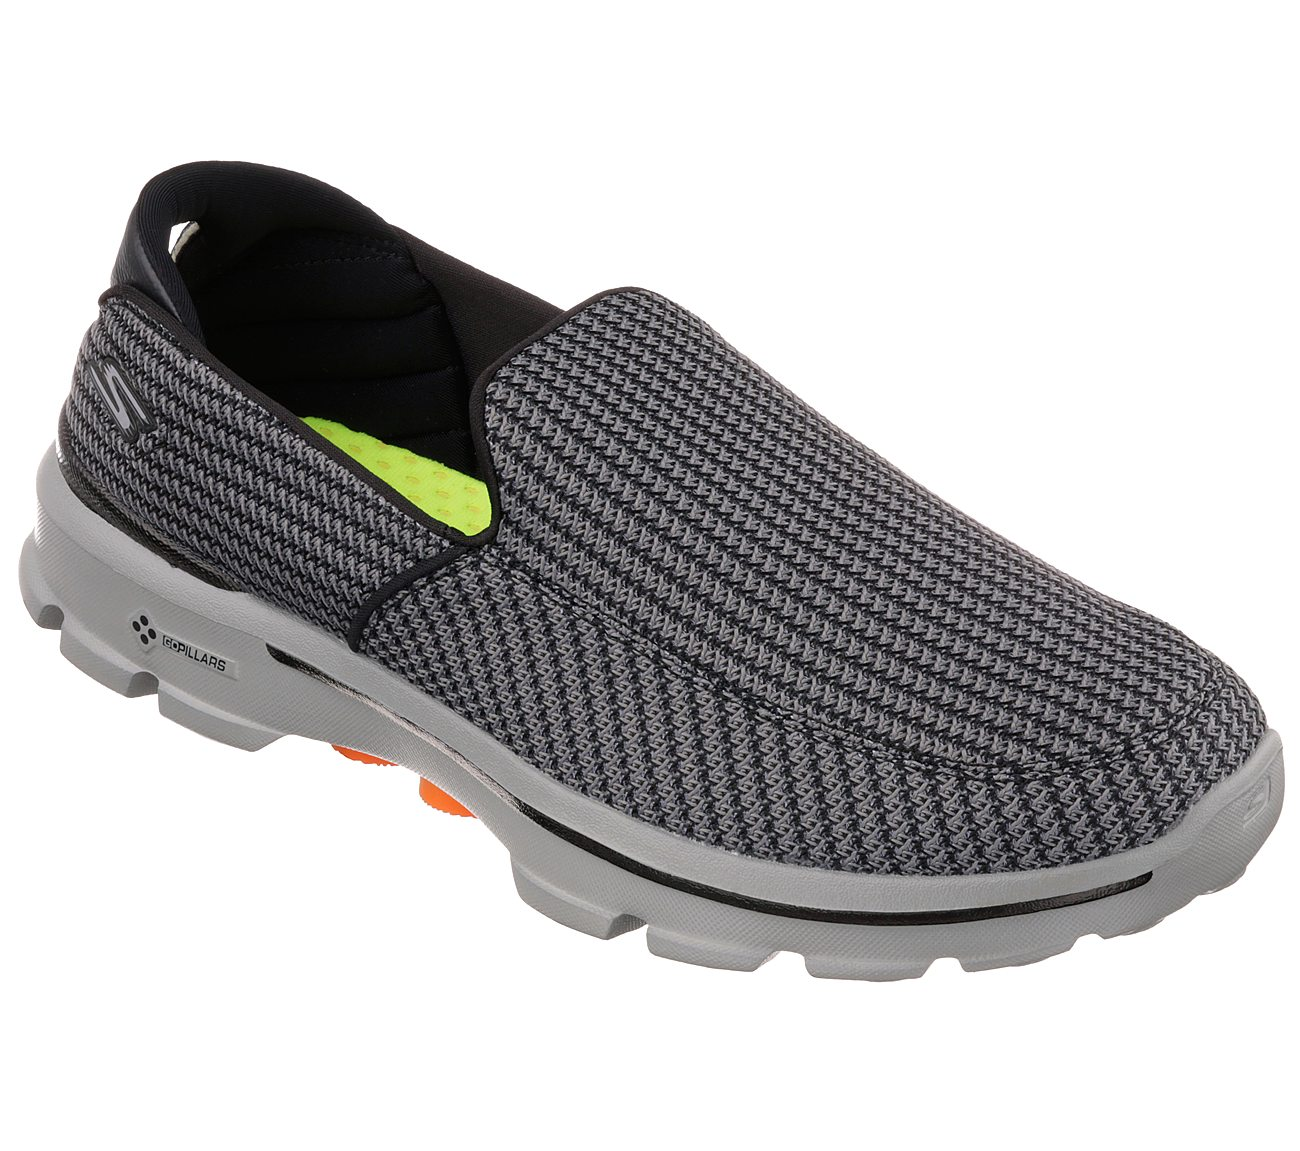 skechers walking shoes hover to zoom EVAKSZH